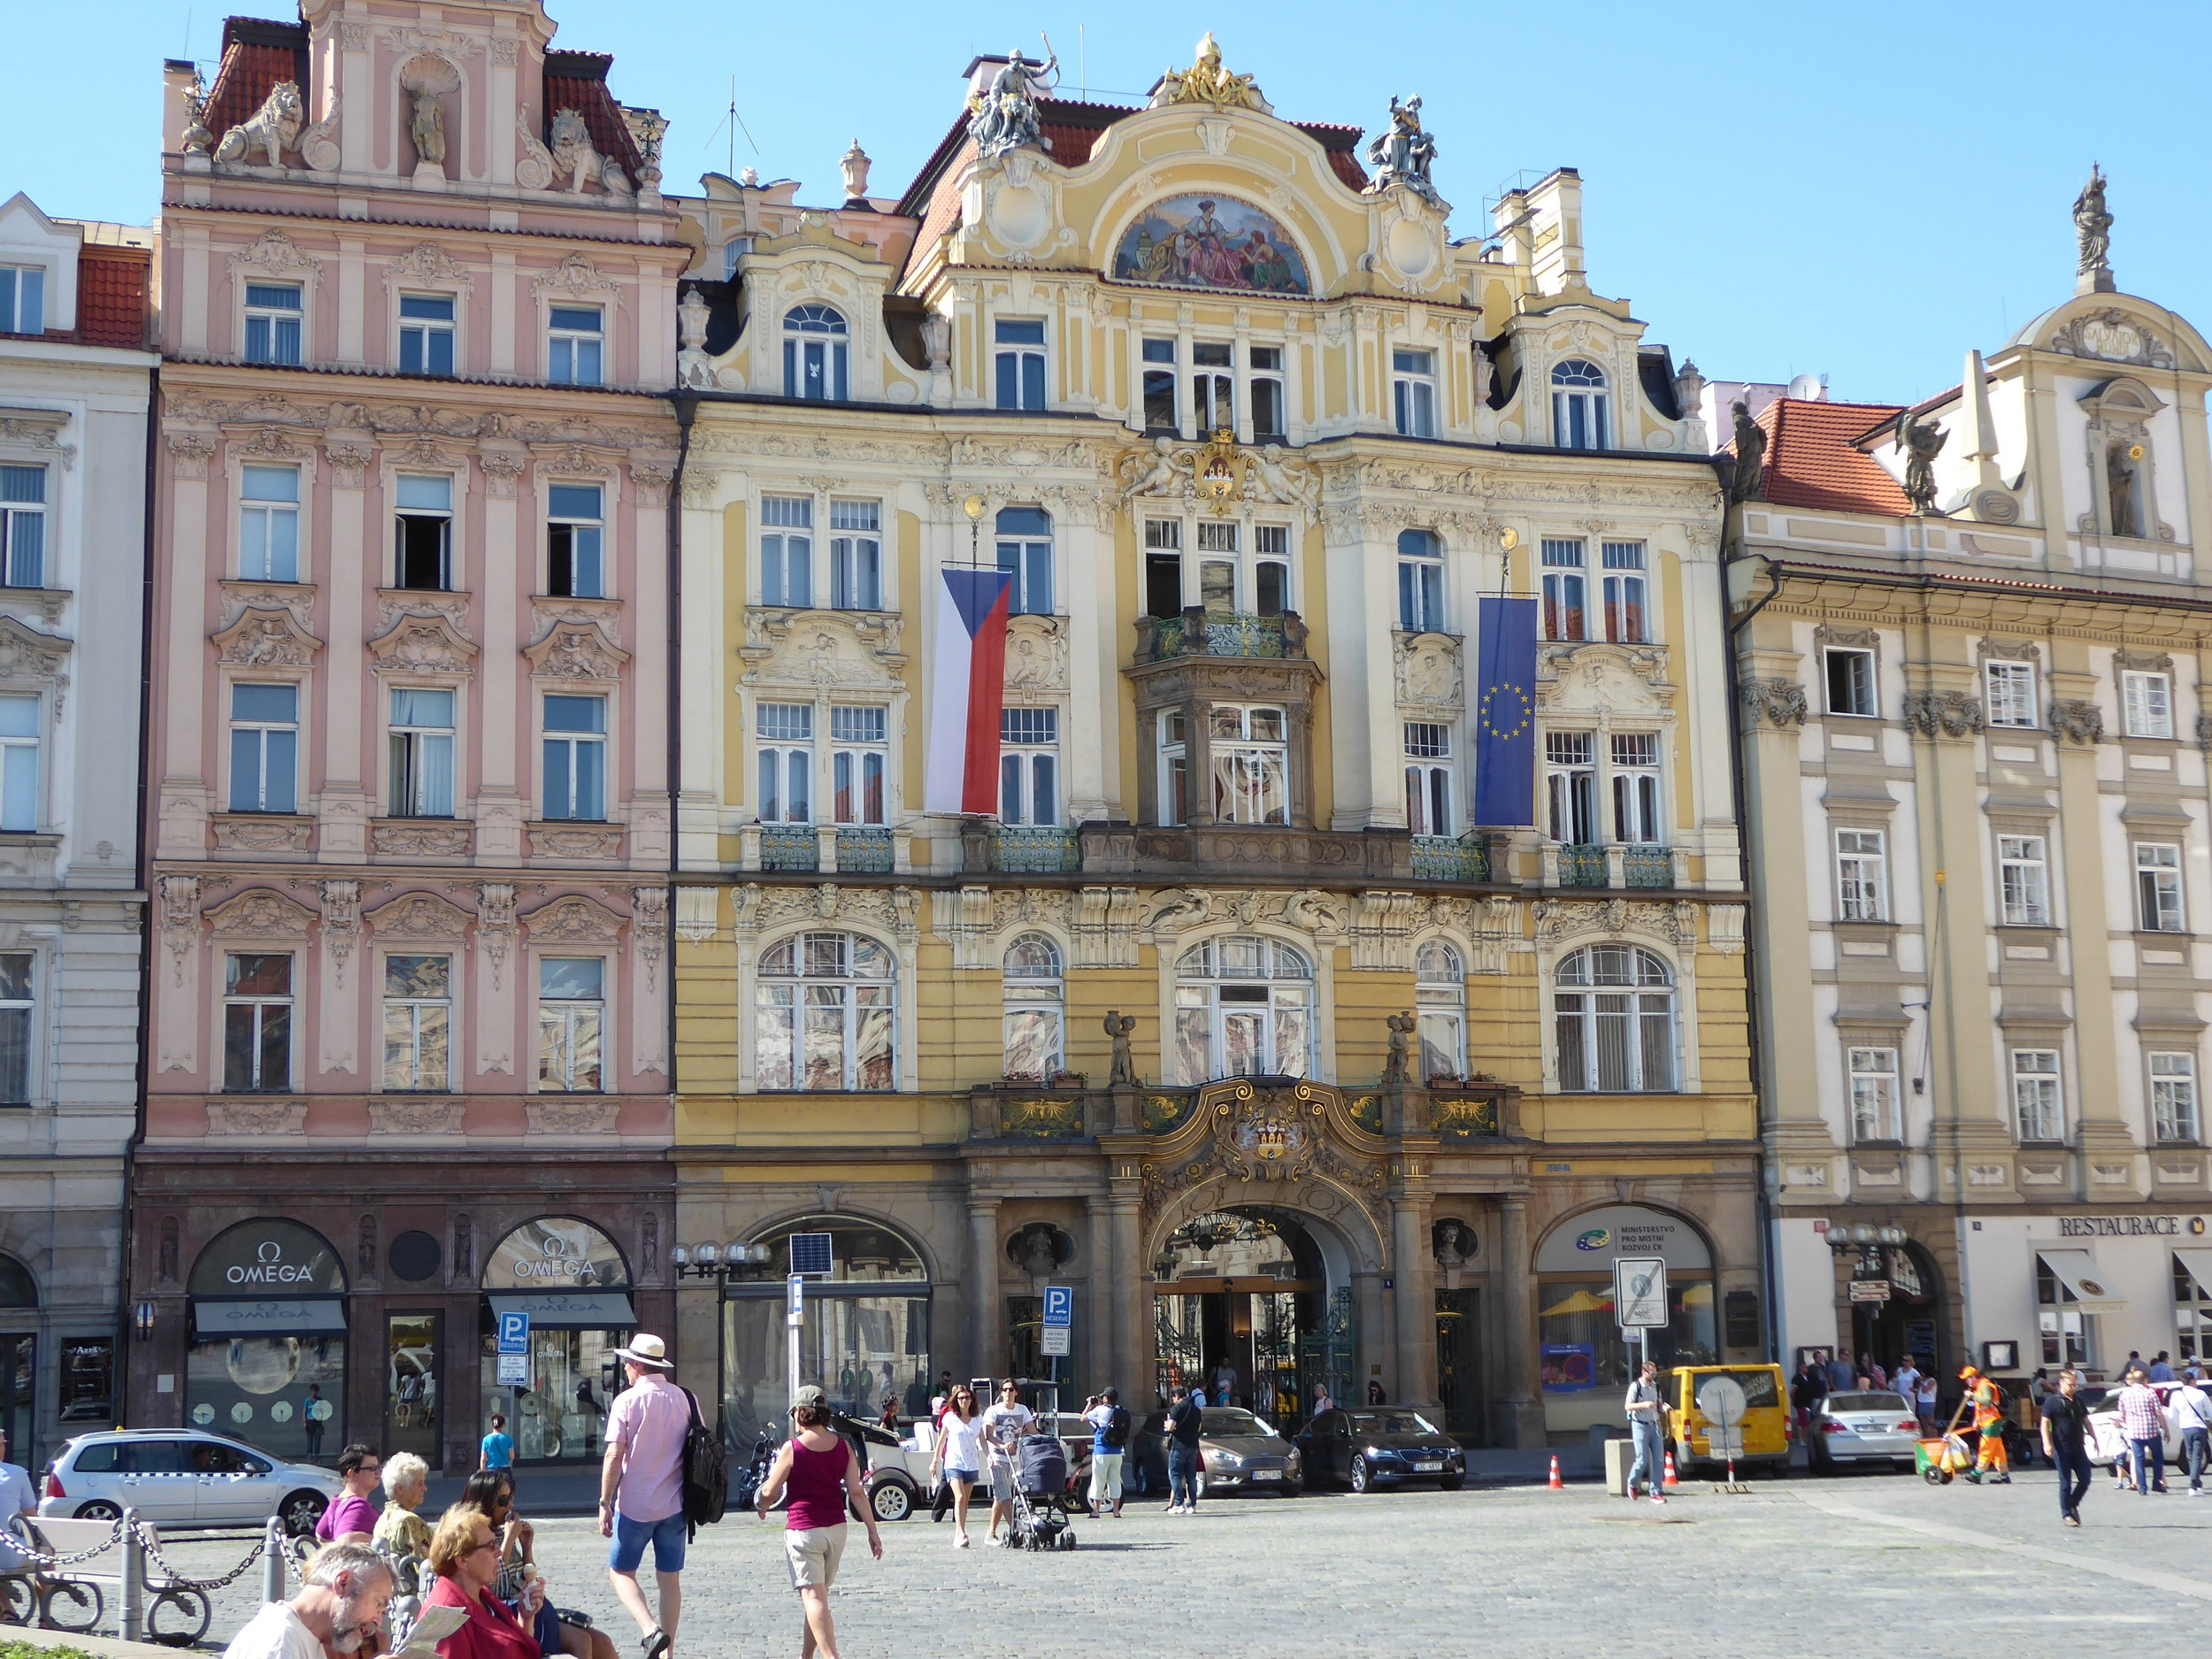 Old Town Square. There always seems to be lots of music and street performers here entertaining the crowds.